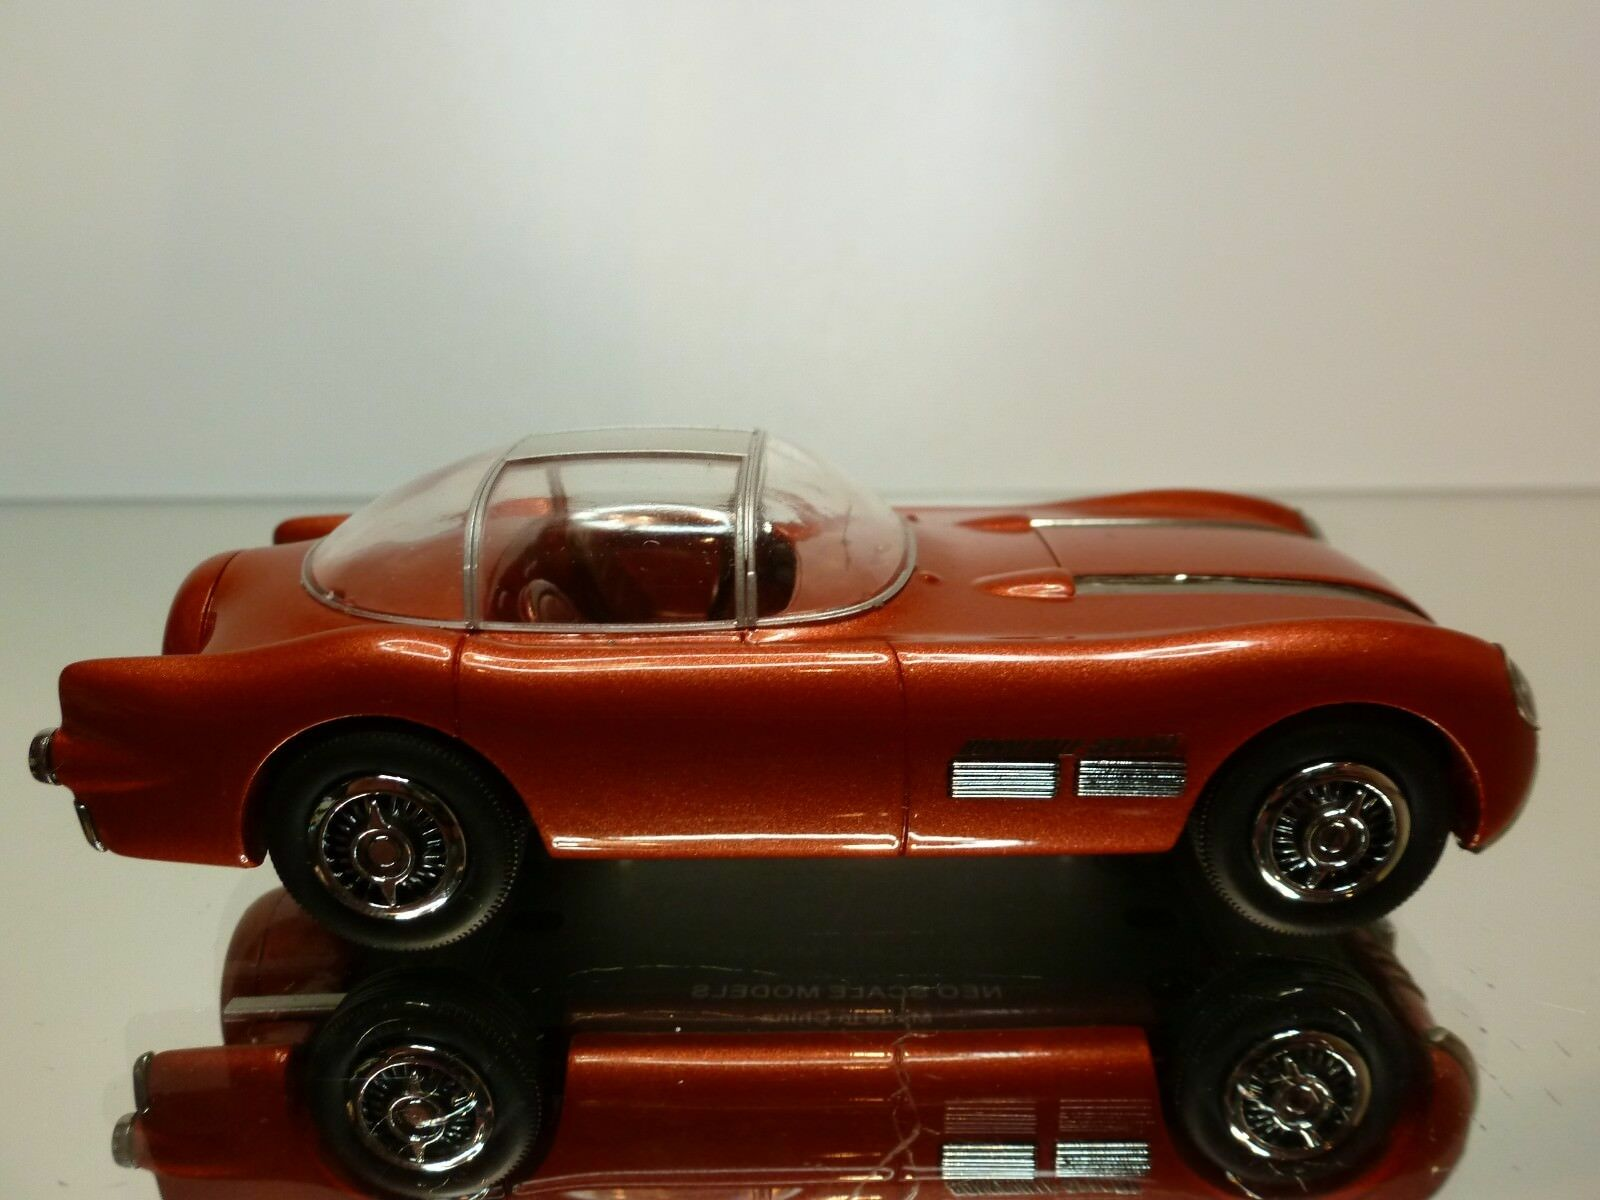 NEO NEO NEO SCALE MODELS PONTIAC BONNEVILLE SPECIAL - 1 43 - EXCELLENT CONDITION - 45 9245bb